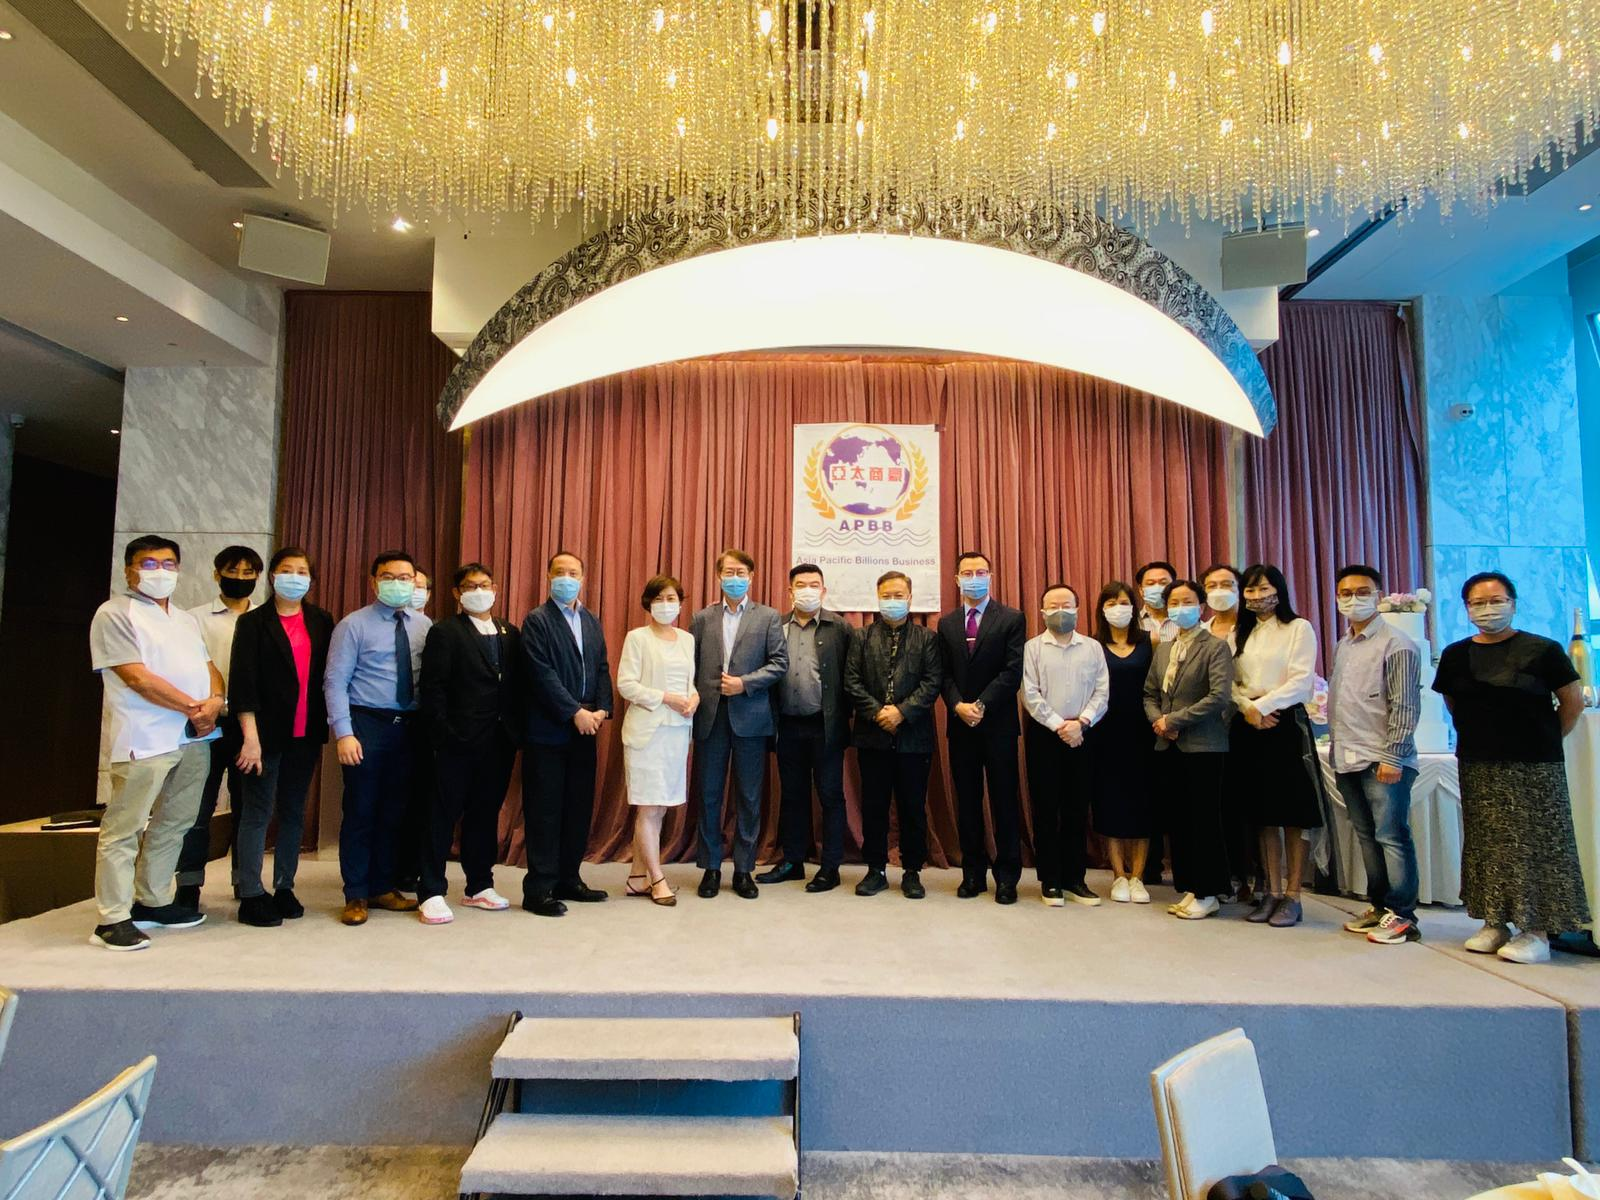 Our Chairman Peter Yip was invited to join APBB Event (Jun 2021)